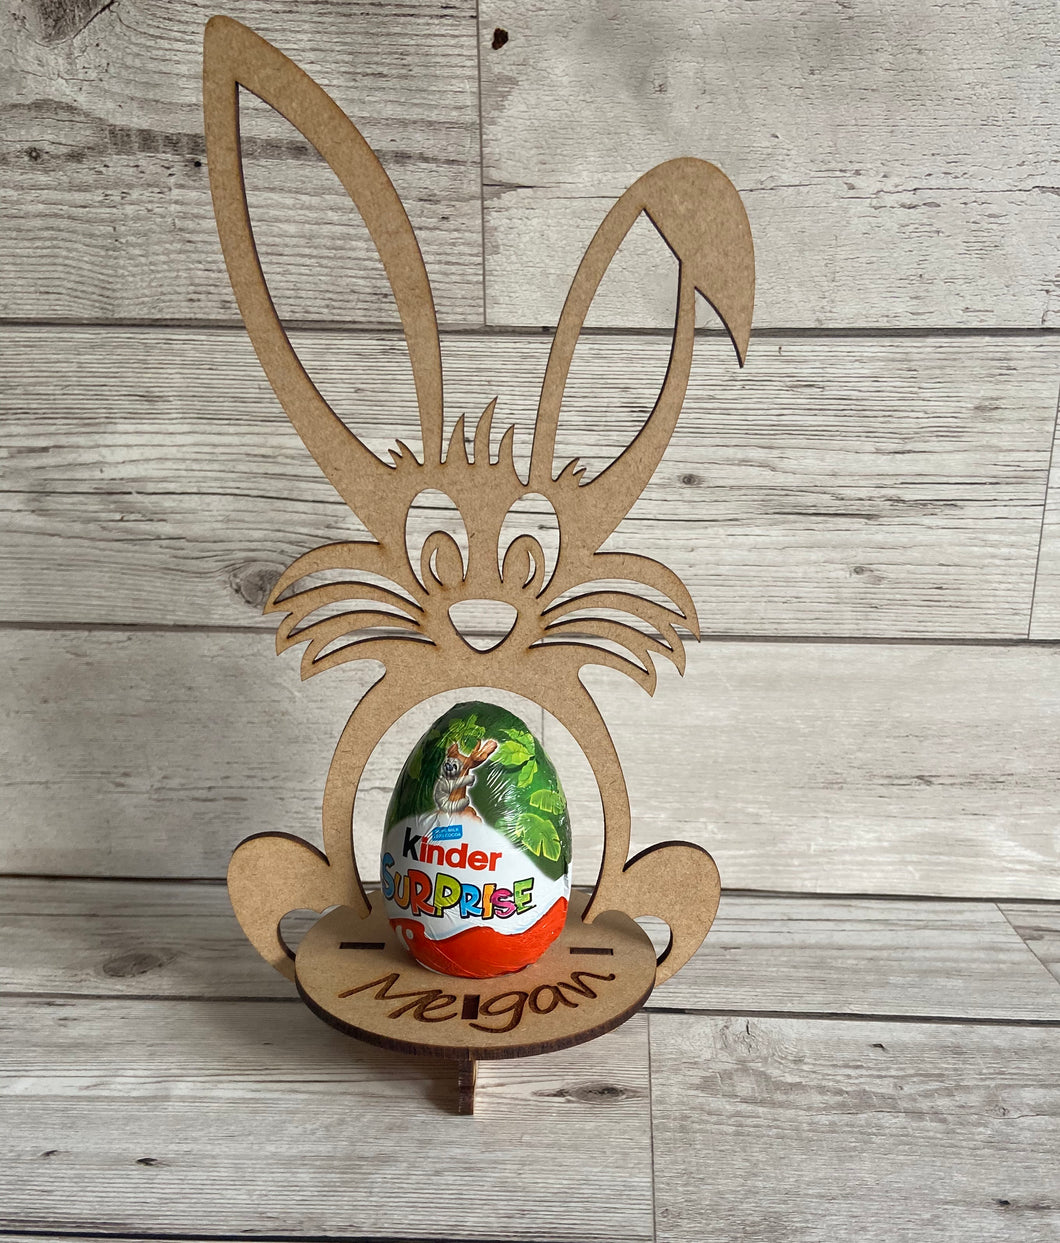 Wooden Personalised mdf bunny egg holder - Laser LLama Designs Ltd